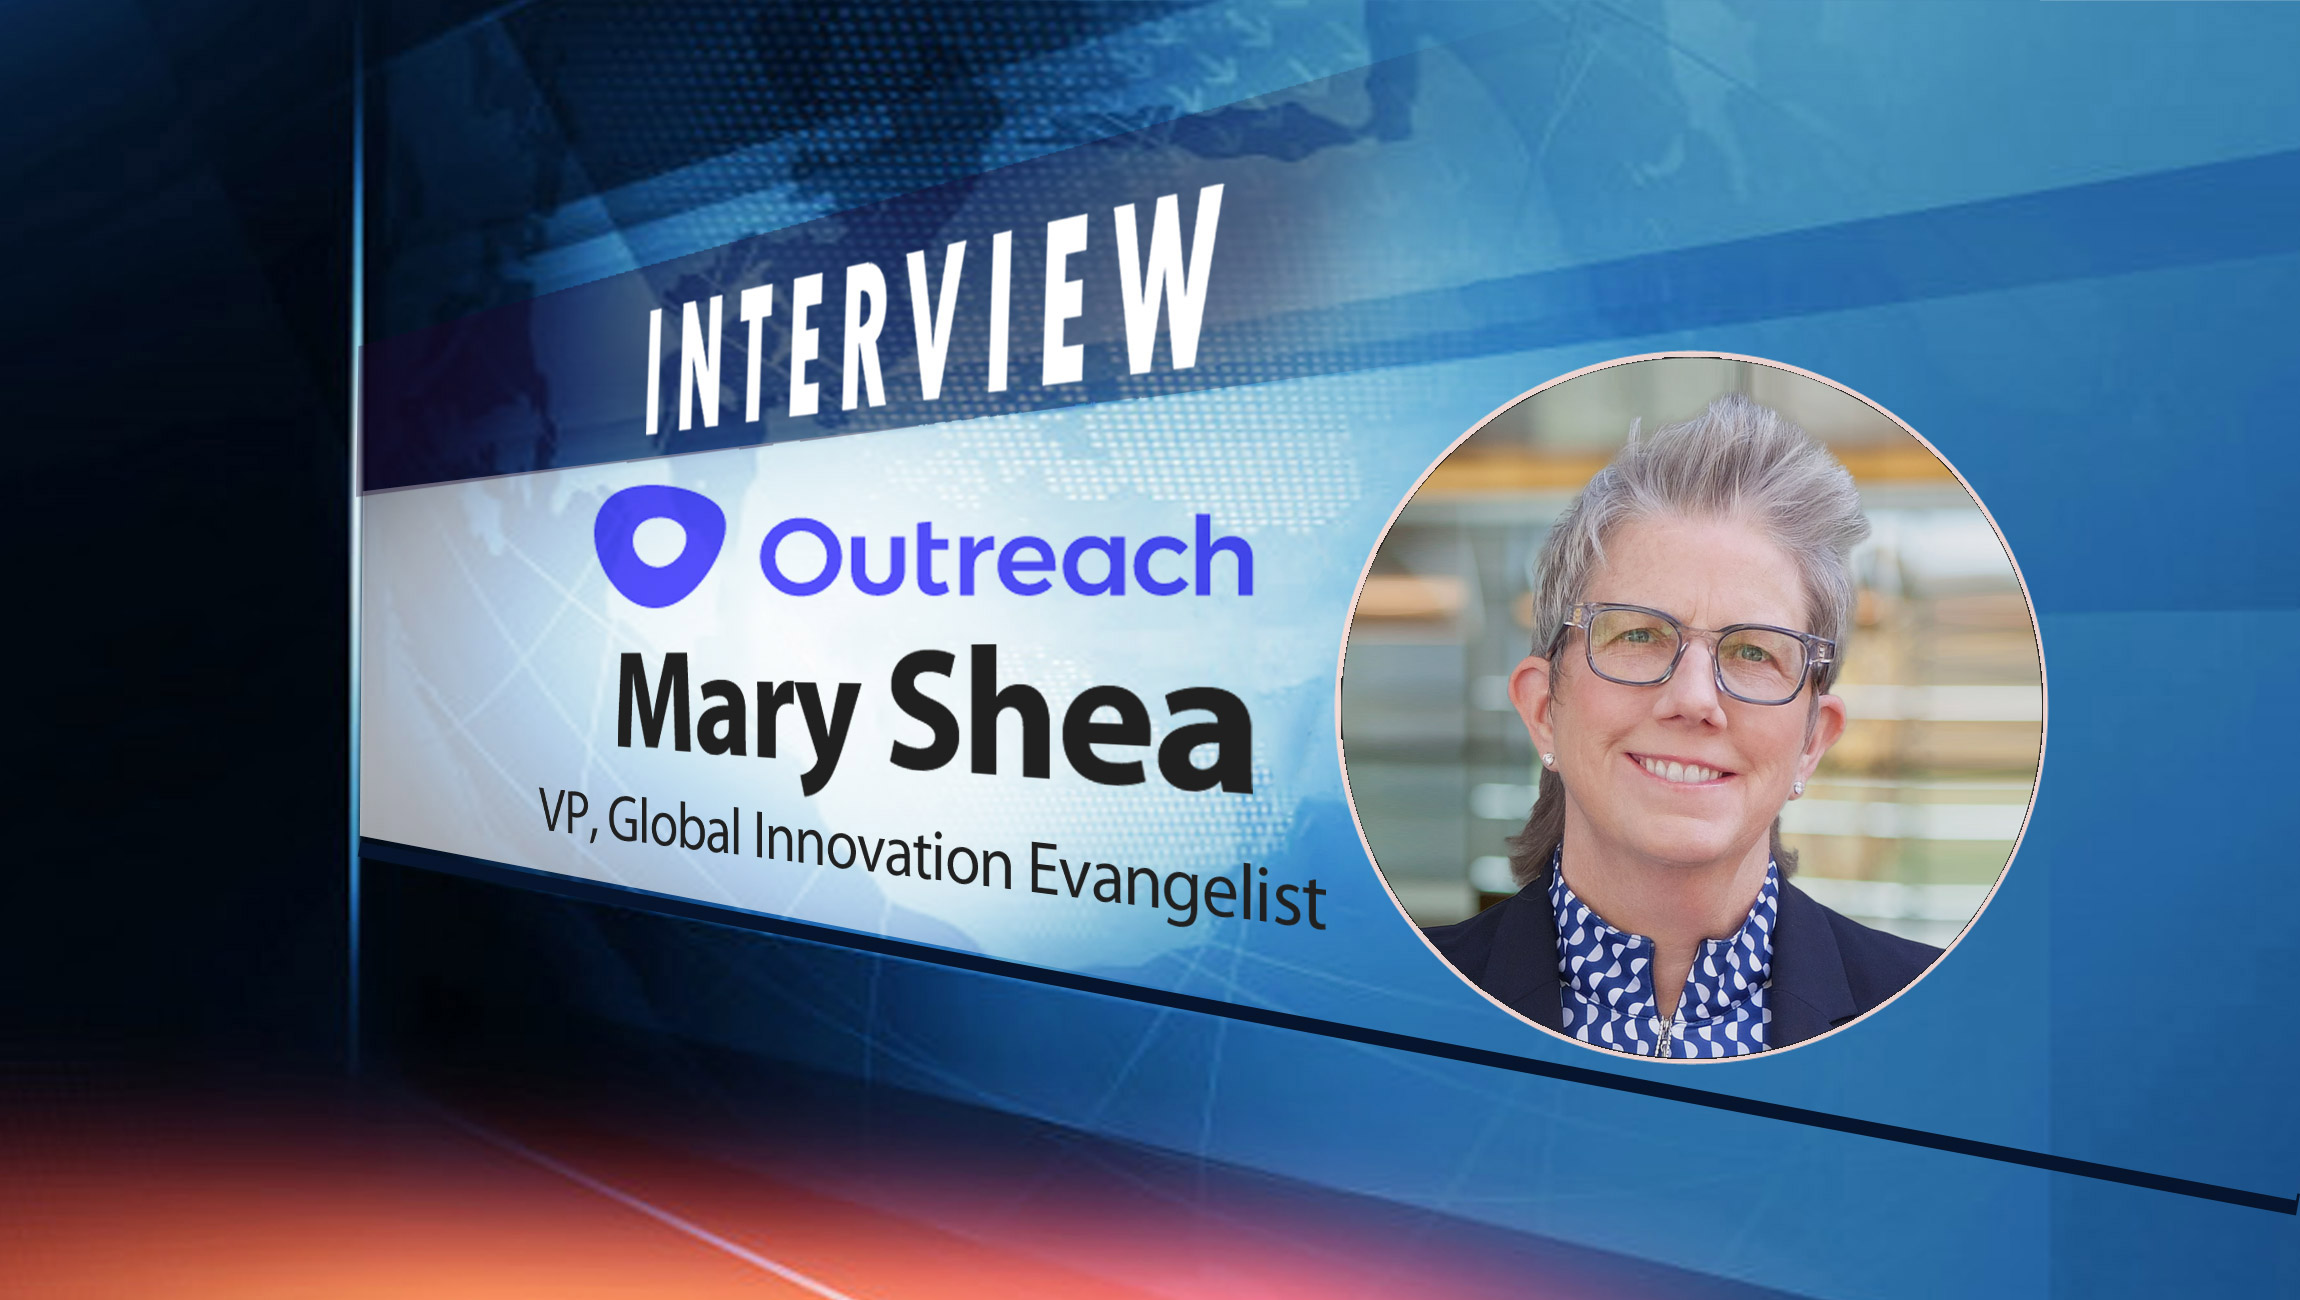 SalesTechStar Interview with Mary Shea, VP, Global Innovation Evangelist at Outreach